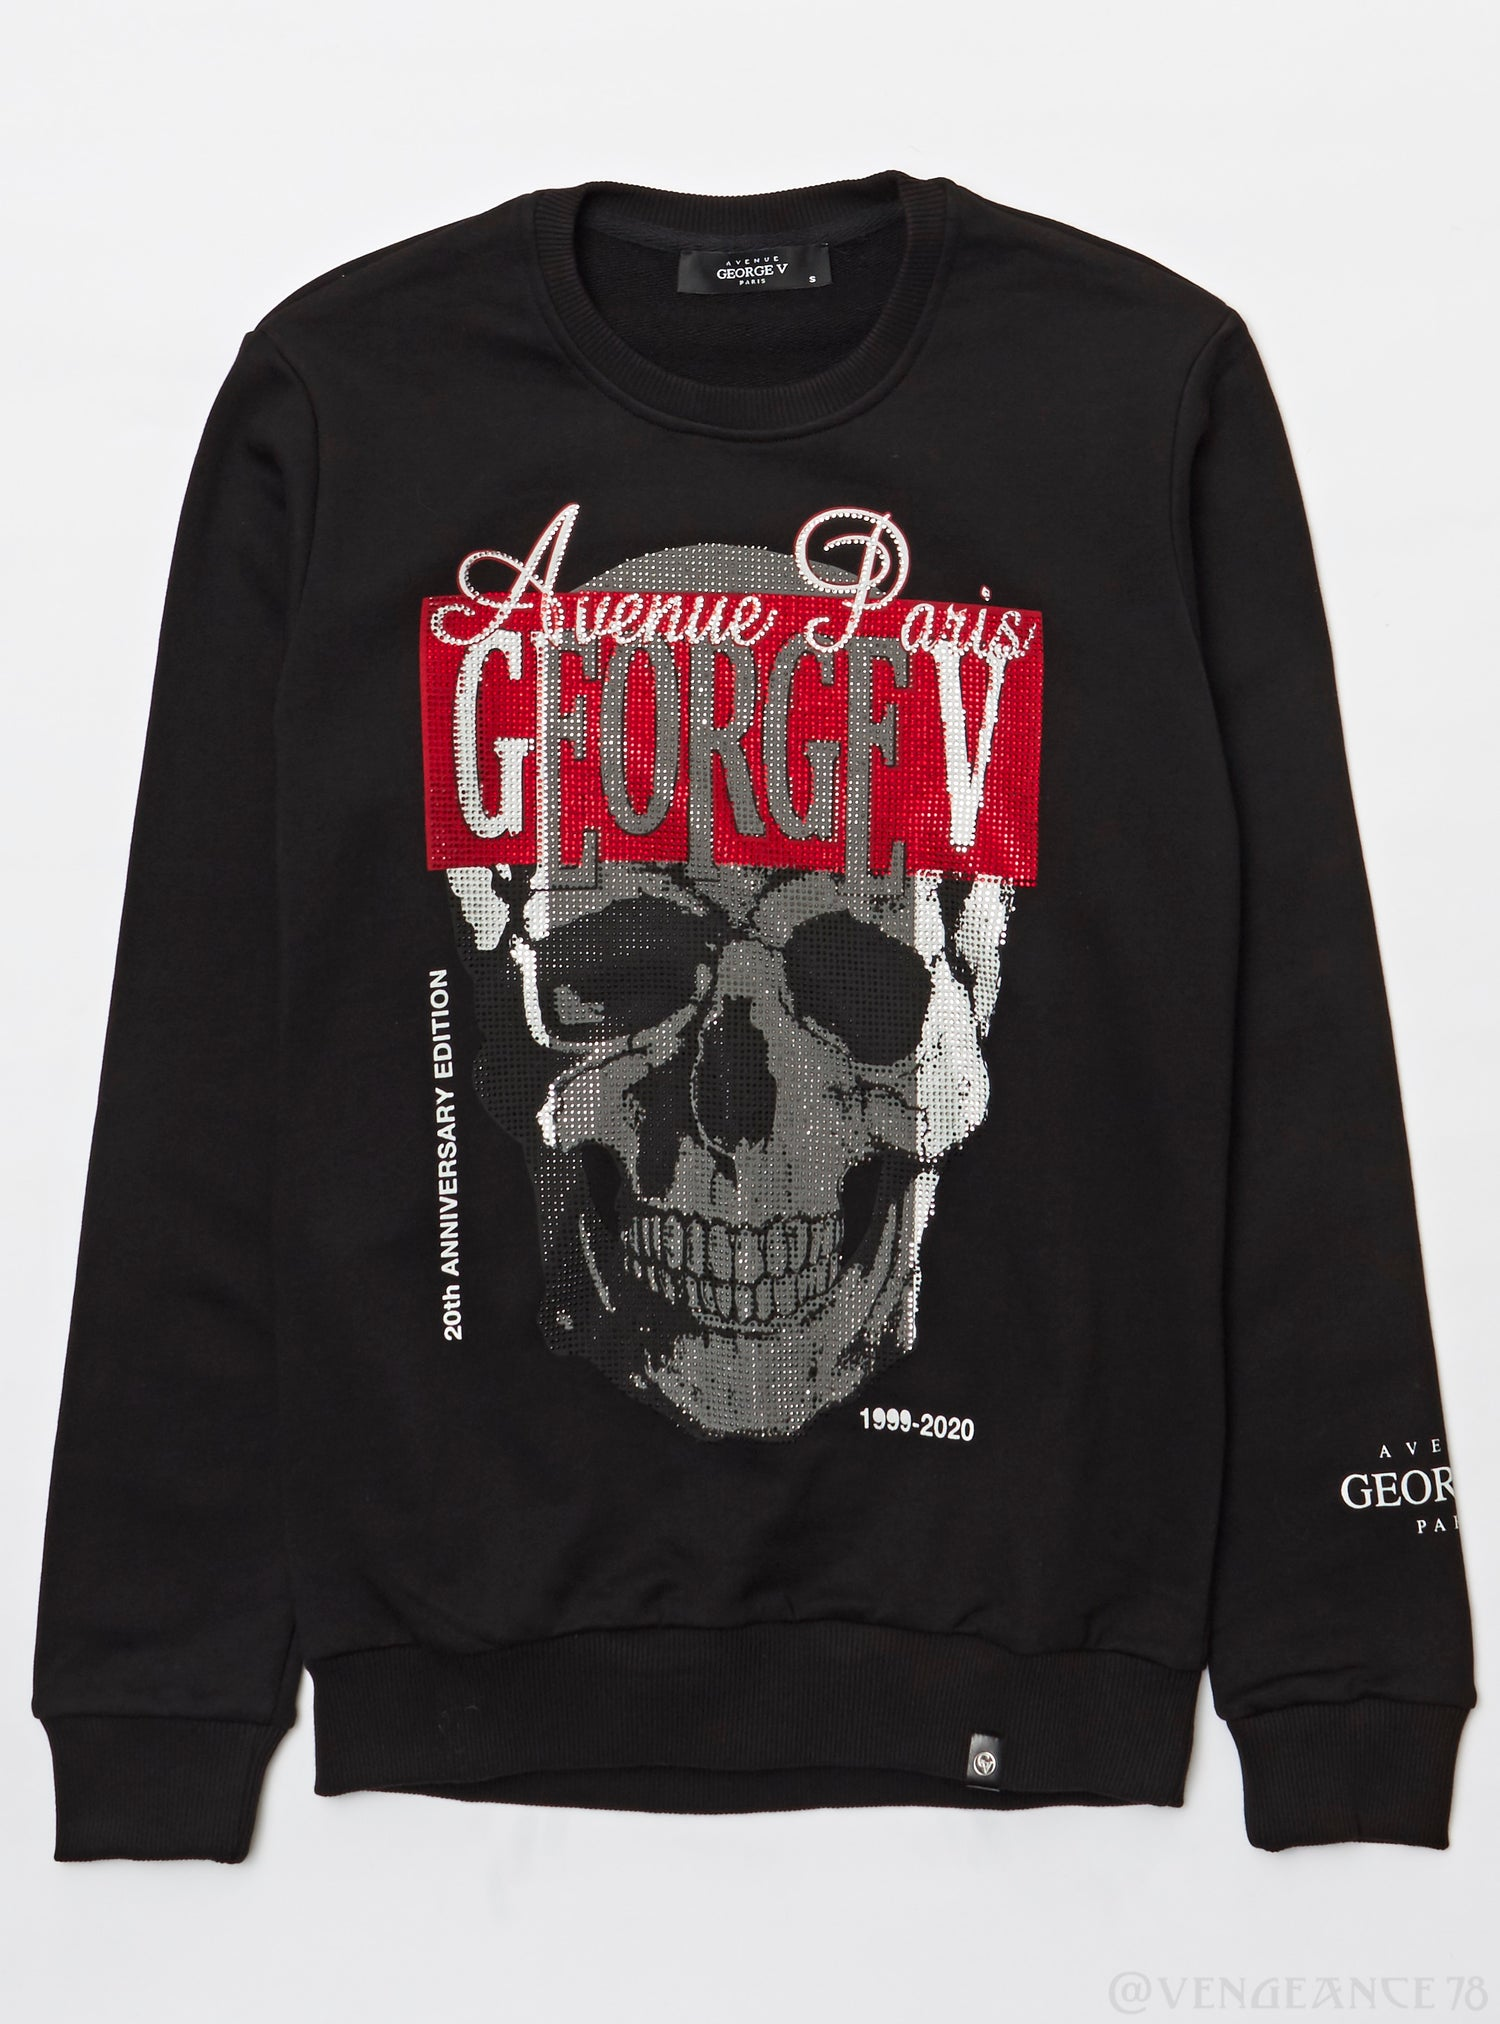 George V Sweater - Crewneck Skull - Black